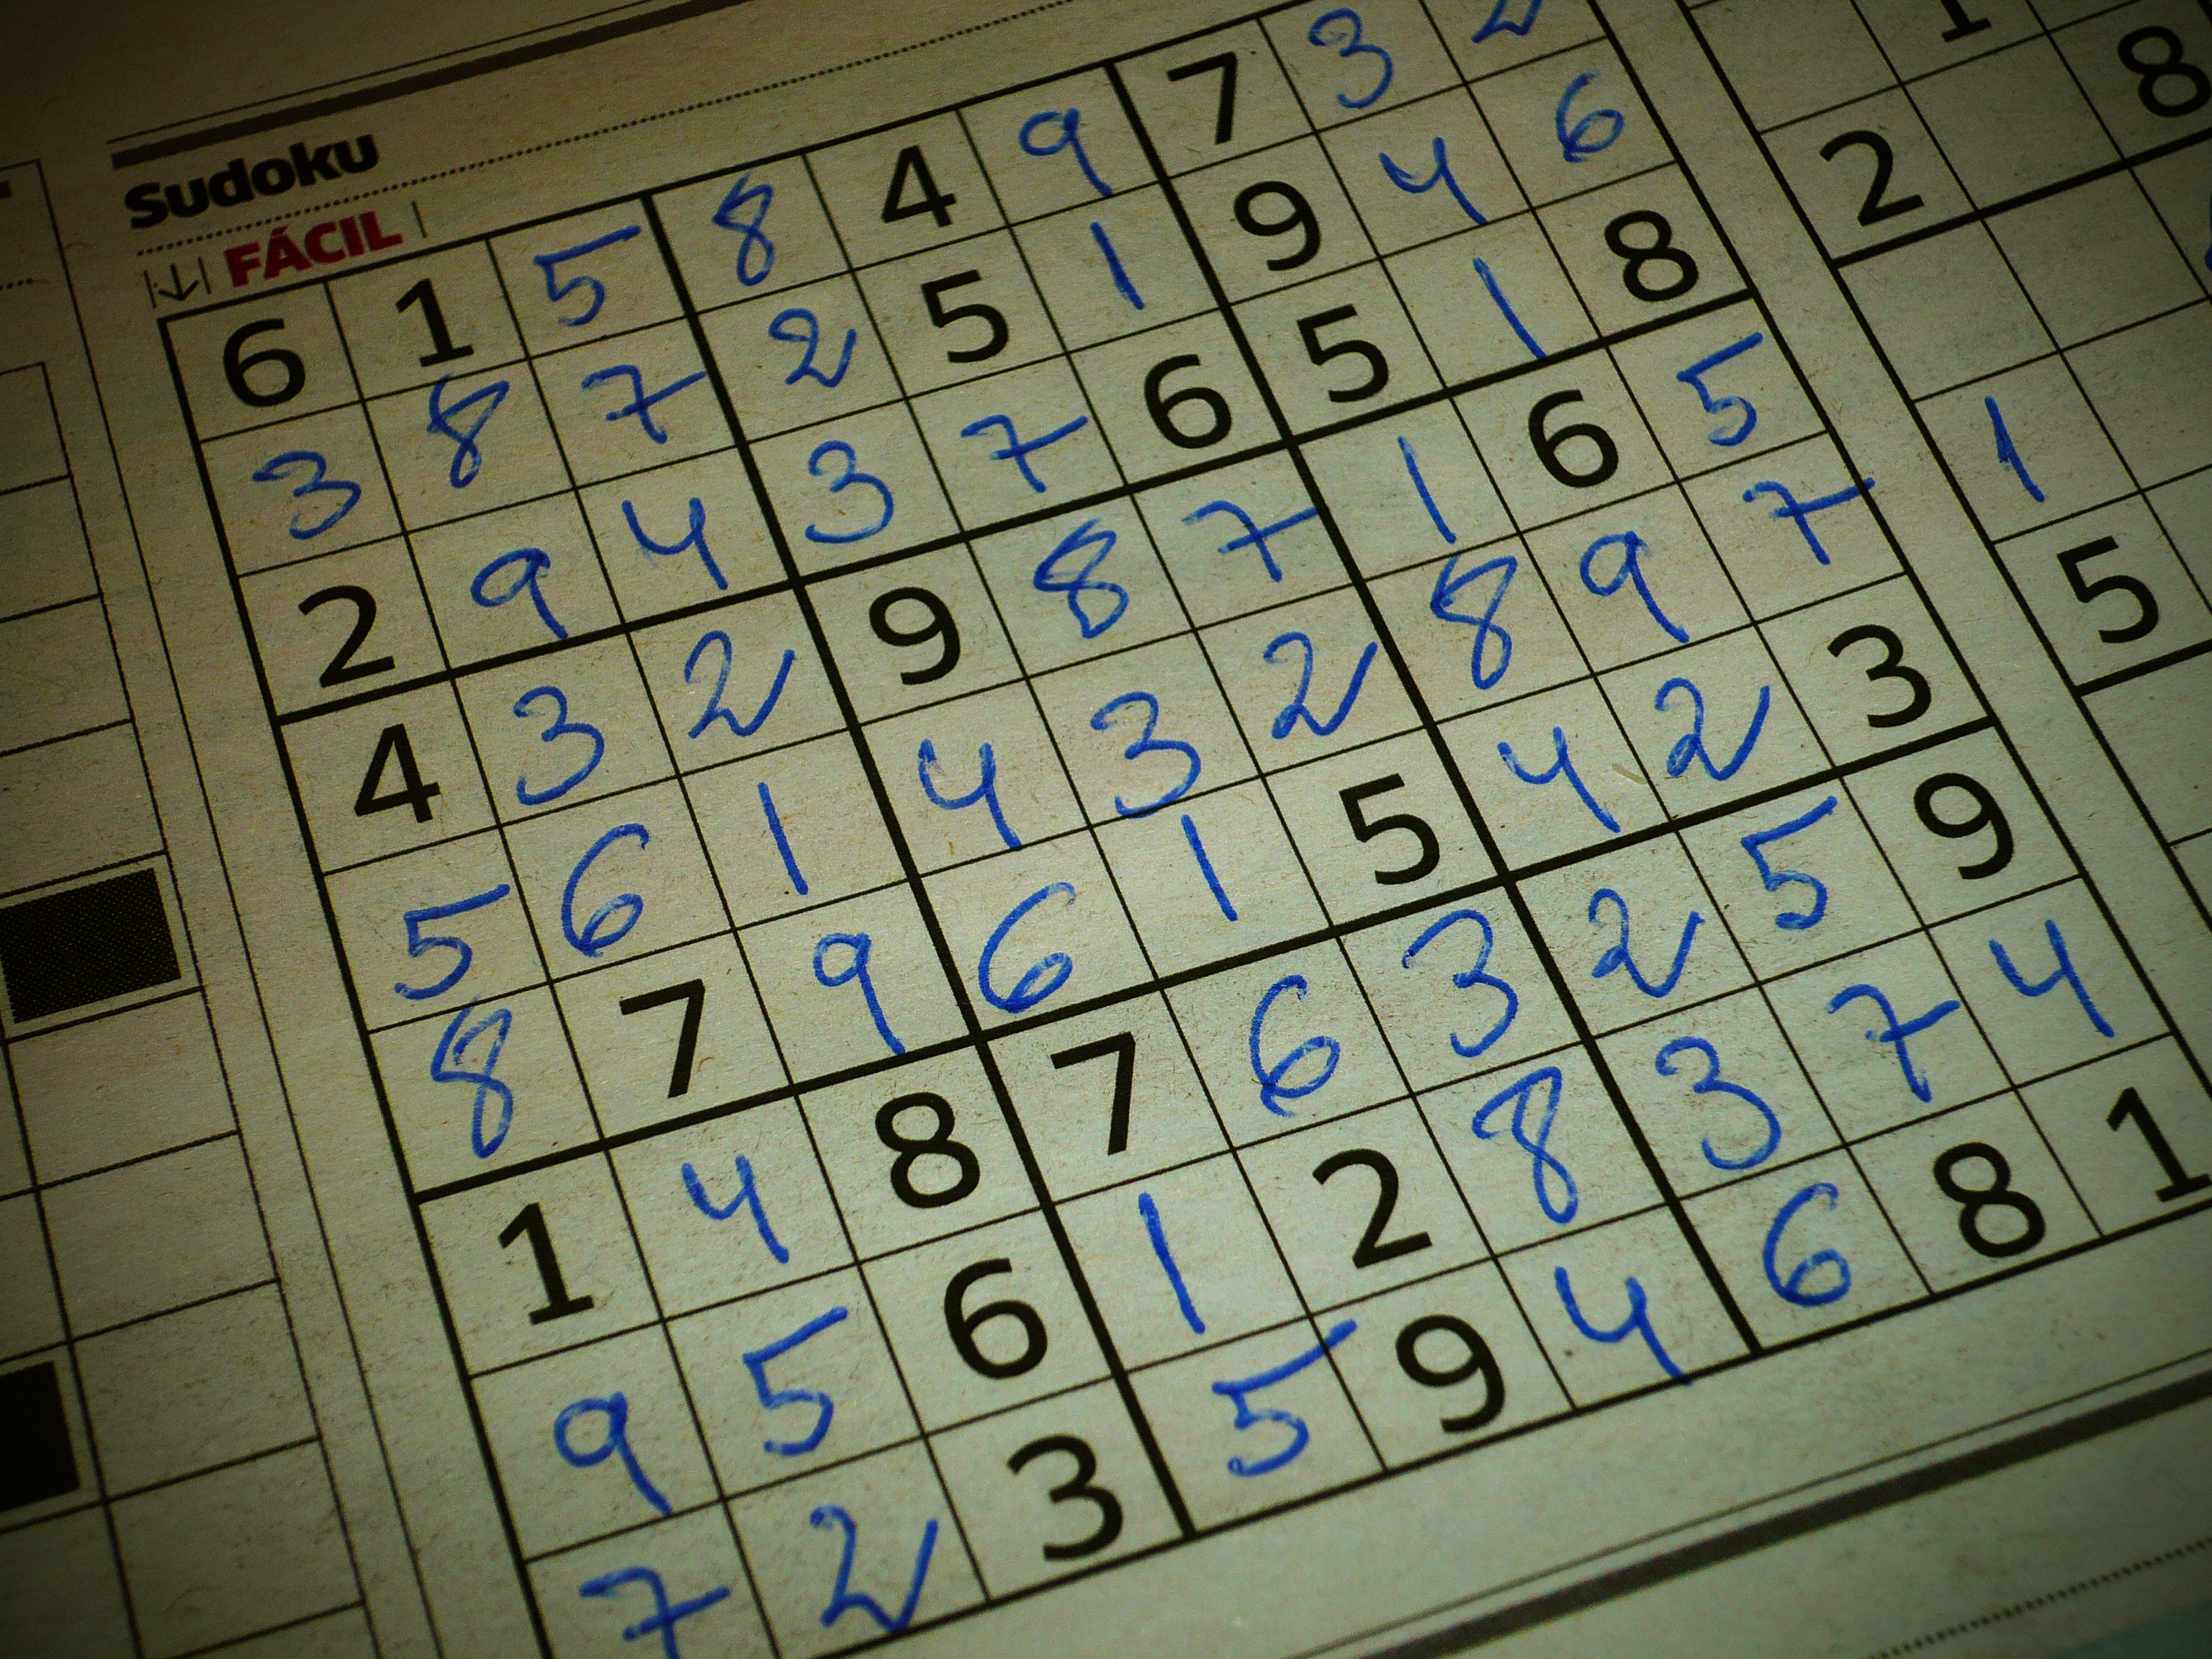 Answered Sudoku Sheet Using Blue Ballpen for 247 Sudoku Relaxation Game